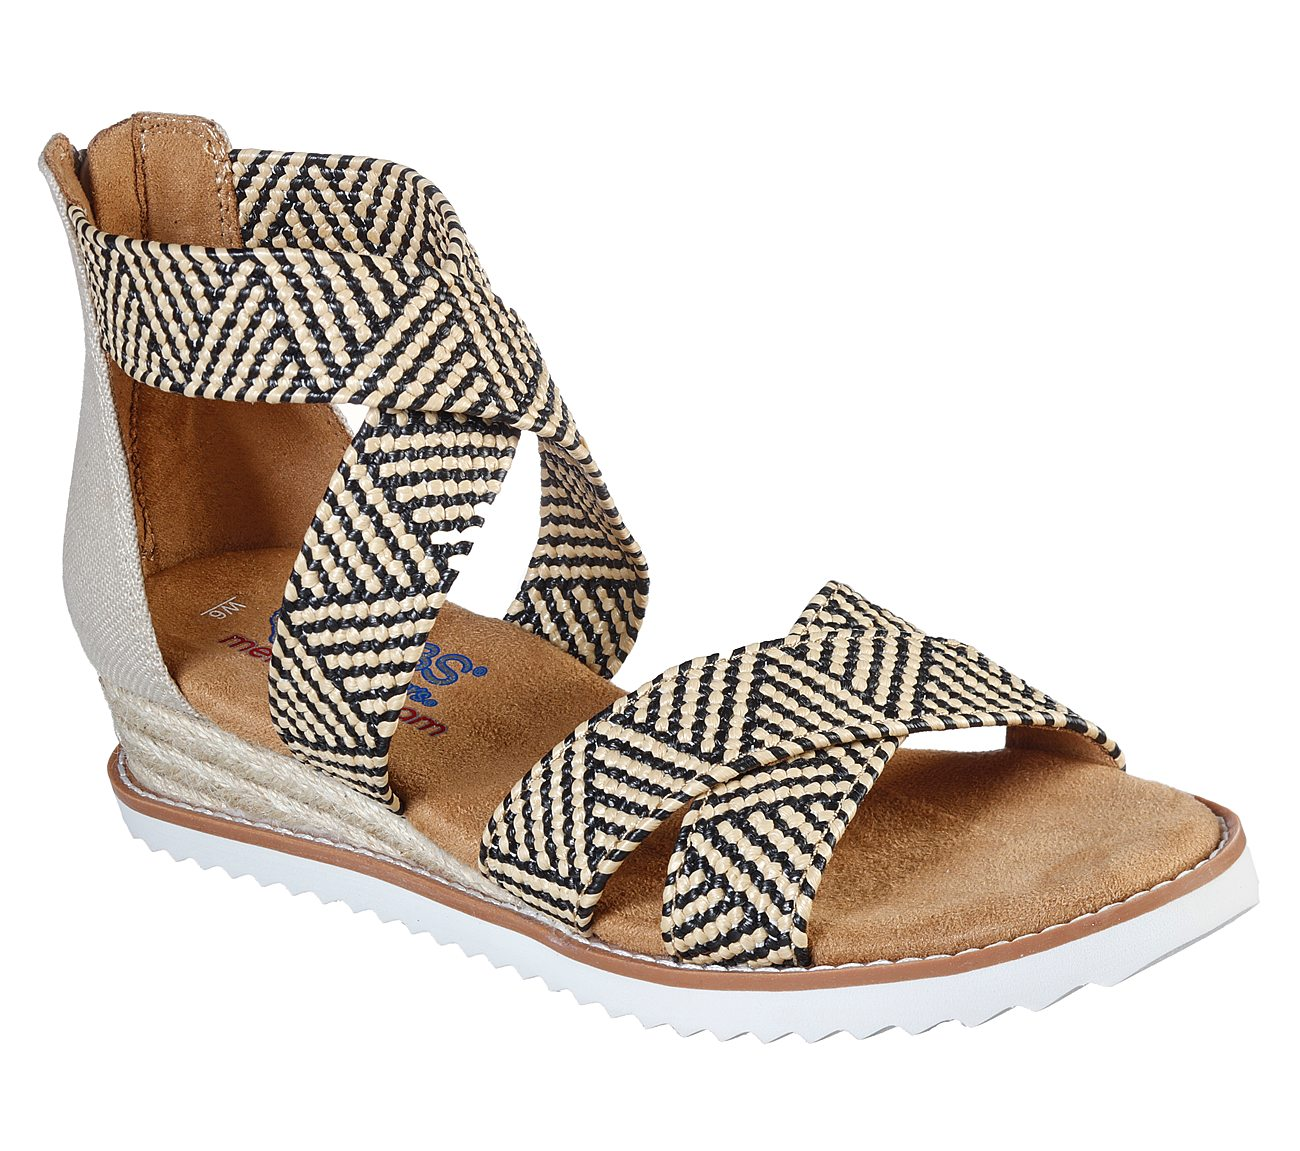 NEW WOMENS LOW WEDGE HEEL LIGHT WEIGHT SOFT COMFORT SUMMER SANDALS SHOES SIZE